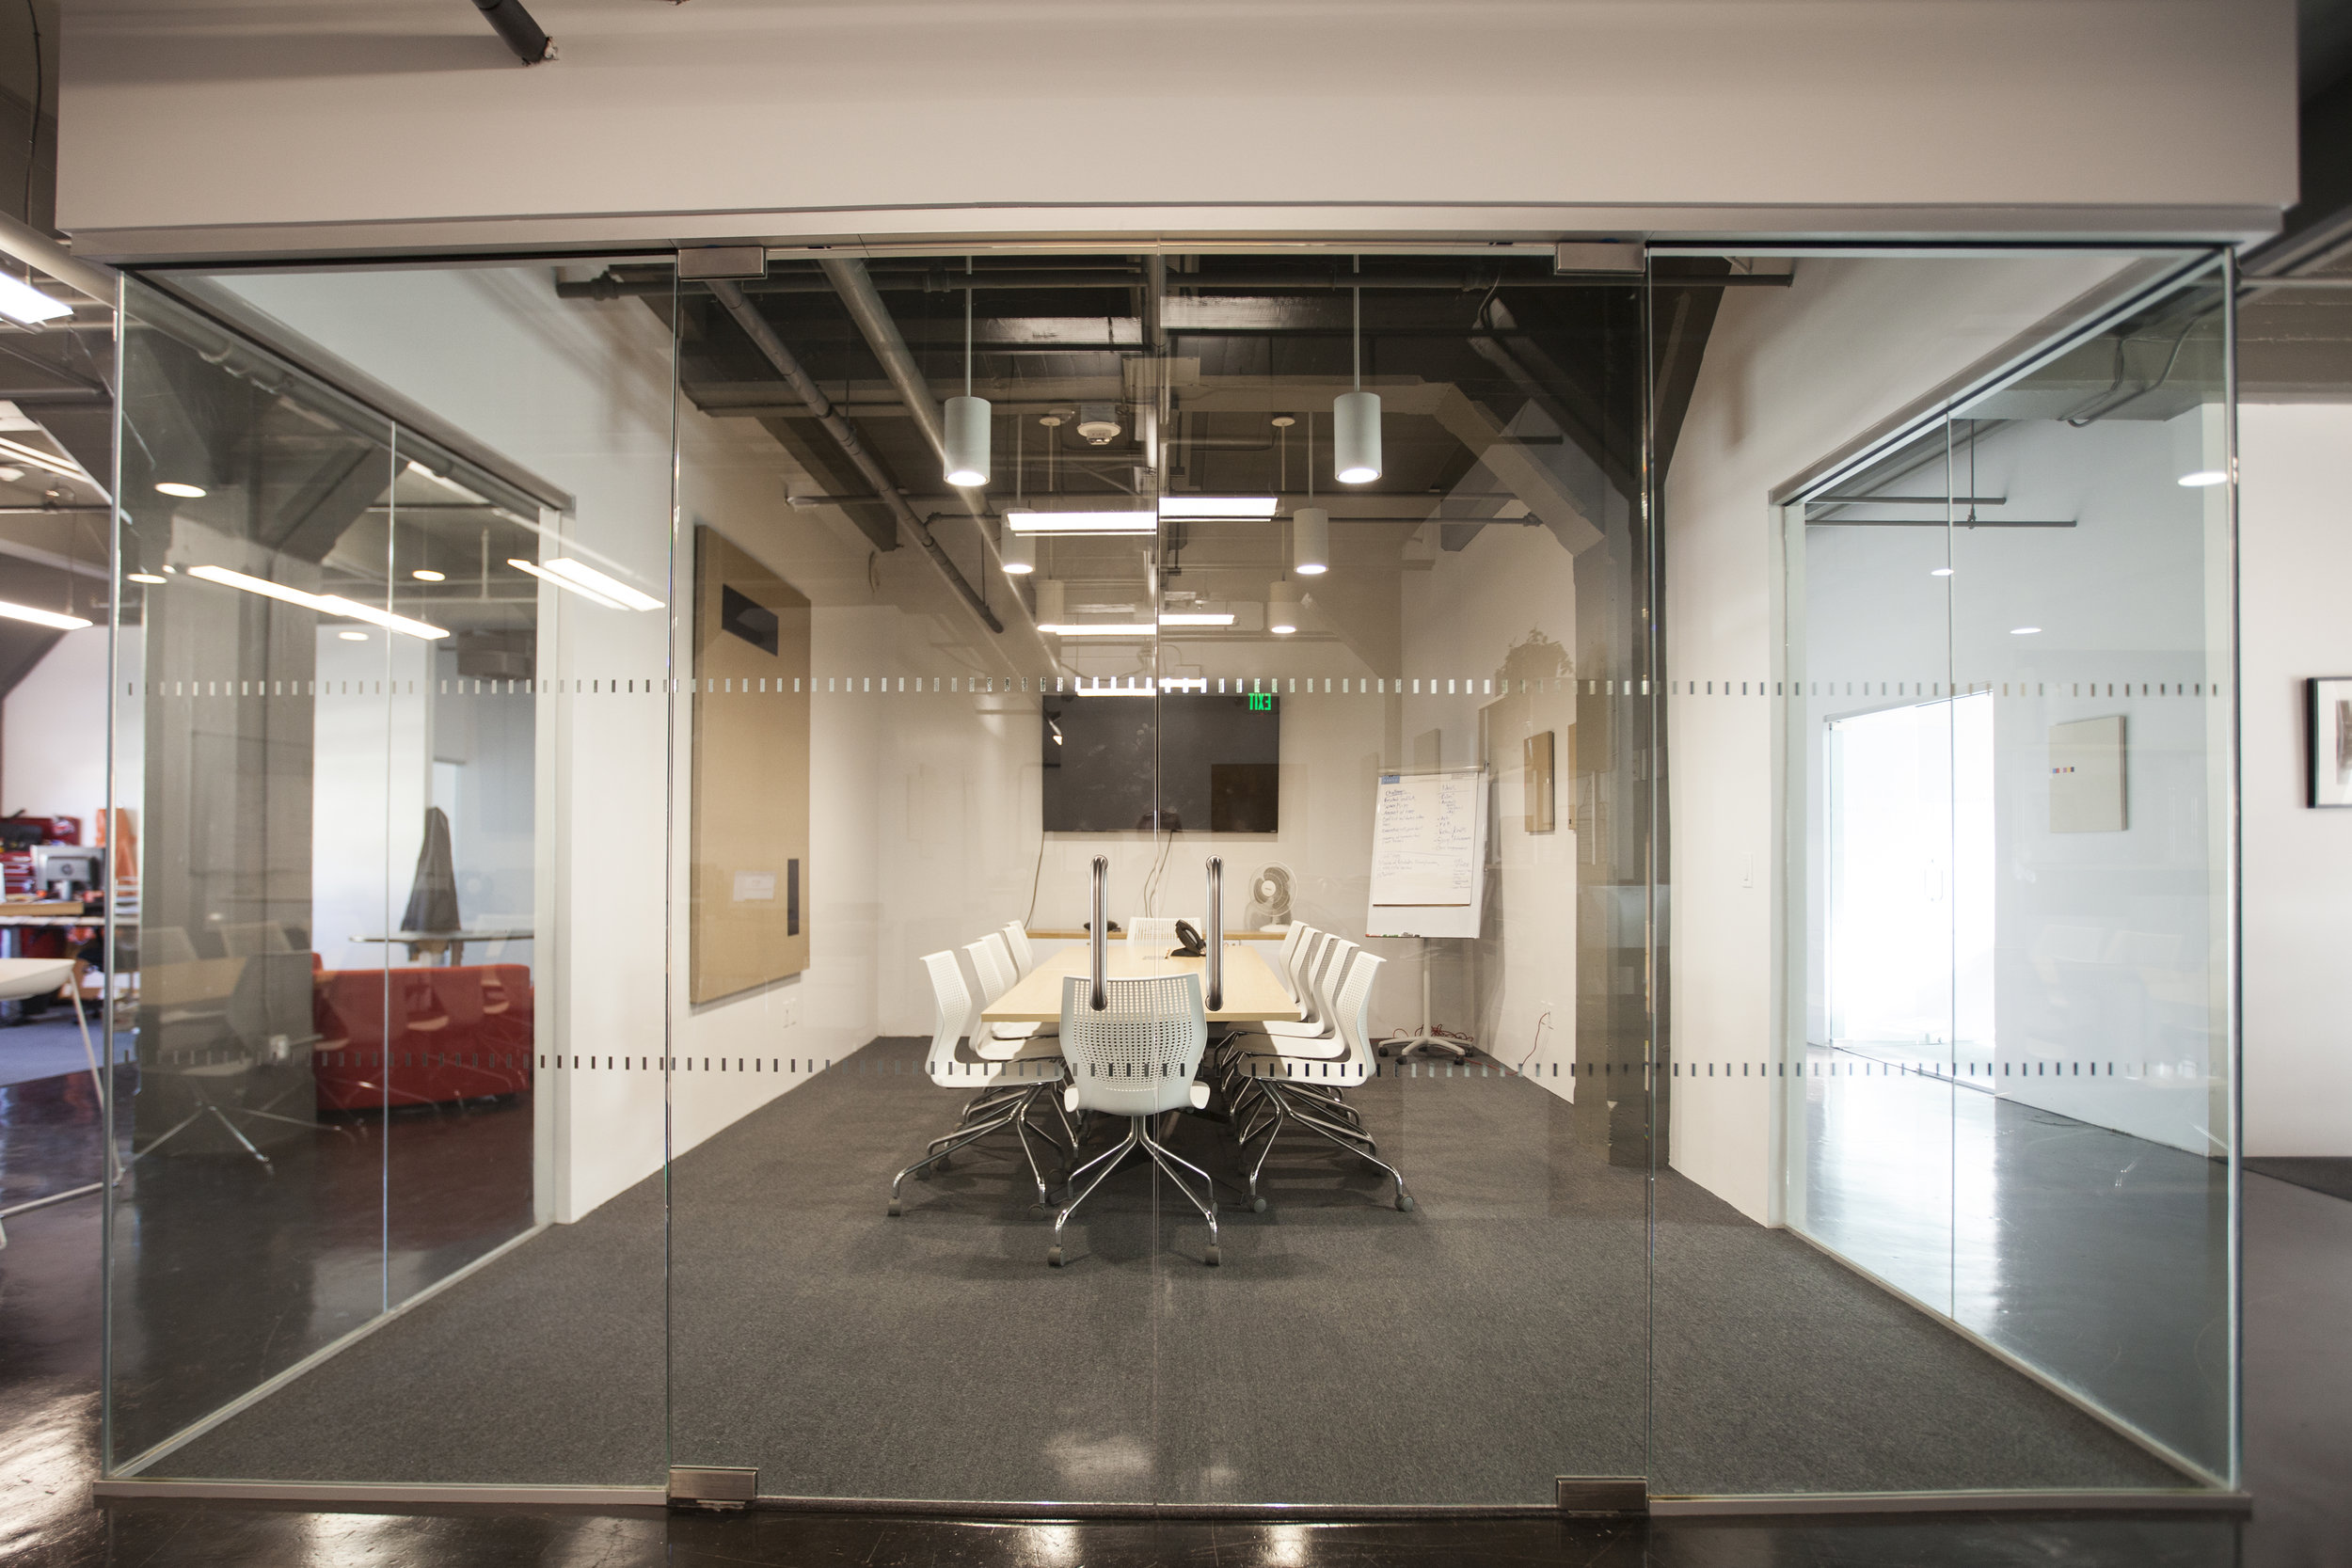 The walls were replaced with glass to open the space with light and create space within the office.